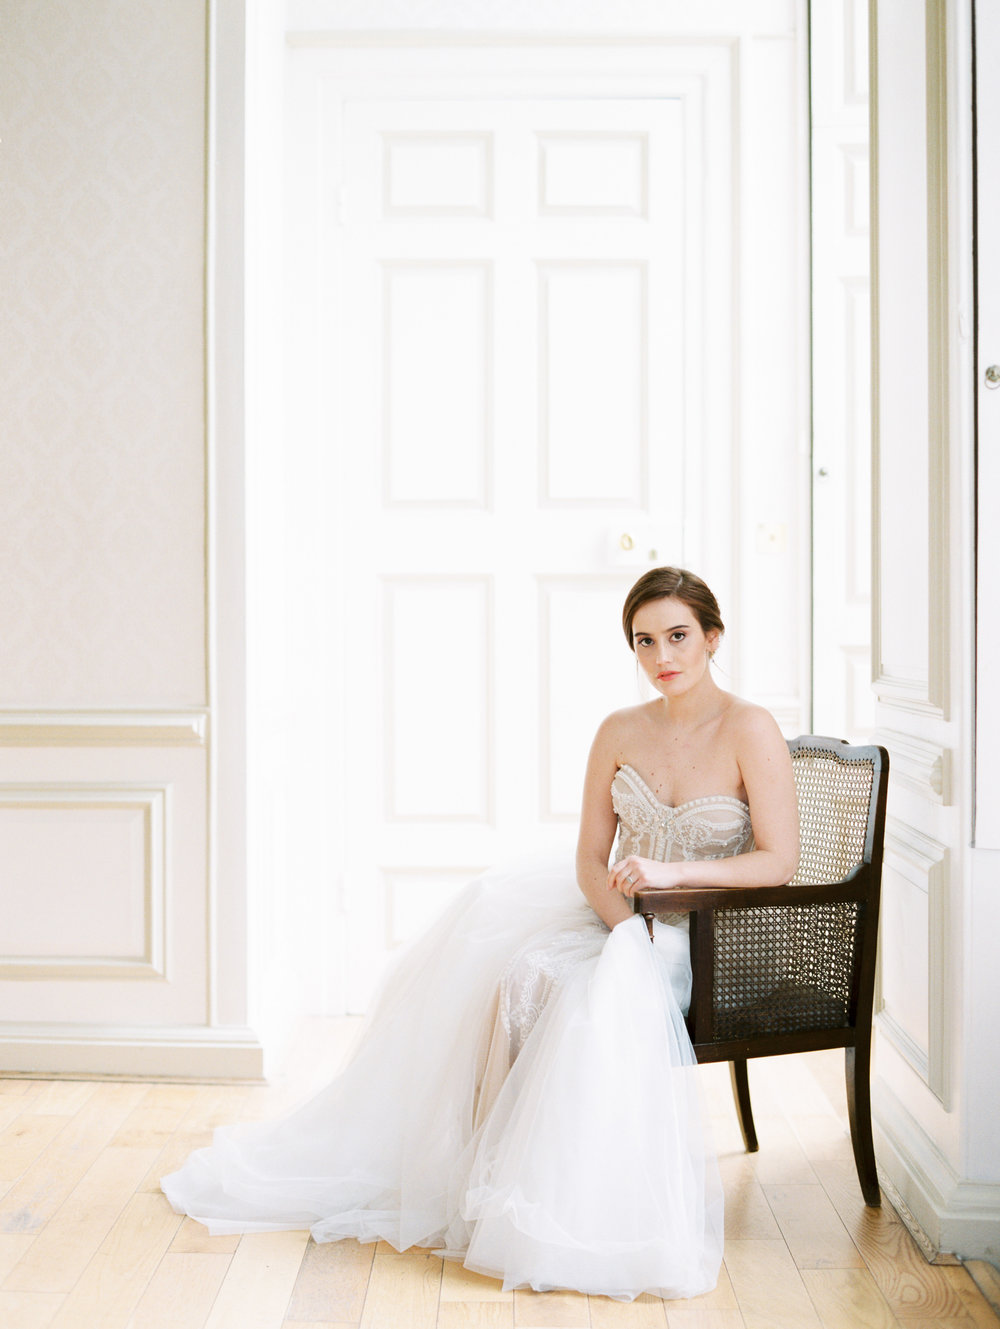 The Timeless Stylist-Elegant and Romantic Wedding Styling-Fine Art Editorial Wedding Shoot-Bride on Antique Chair.jpg